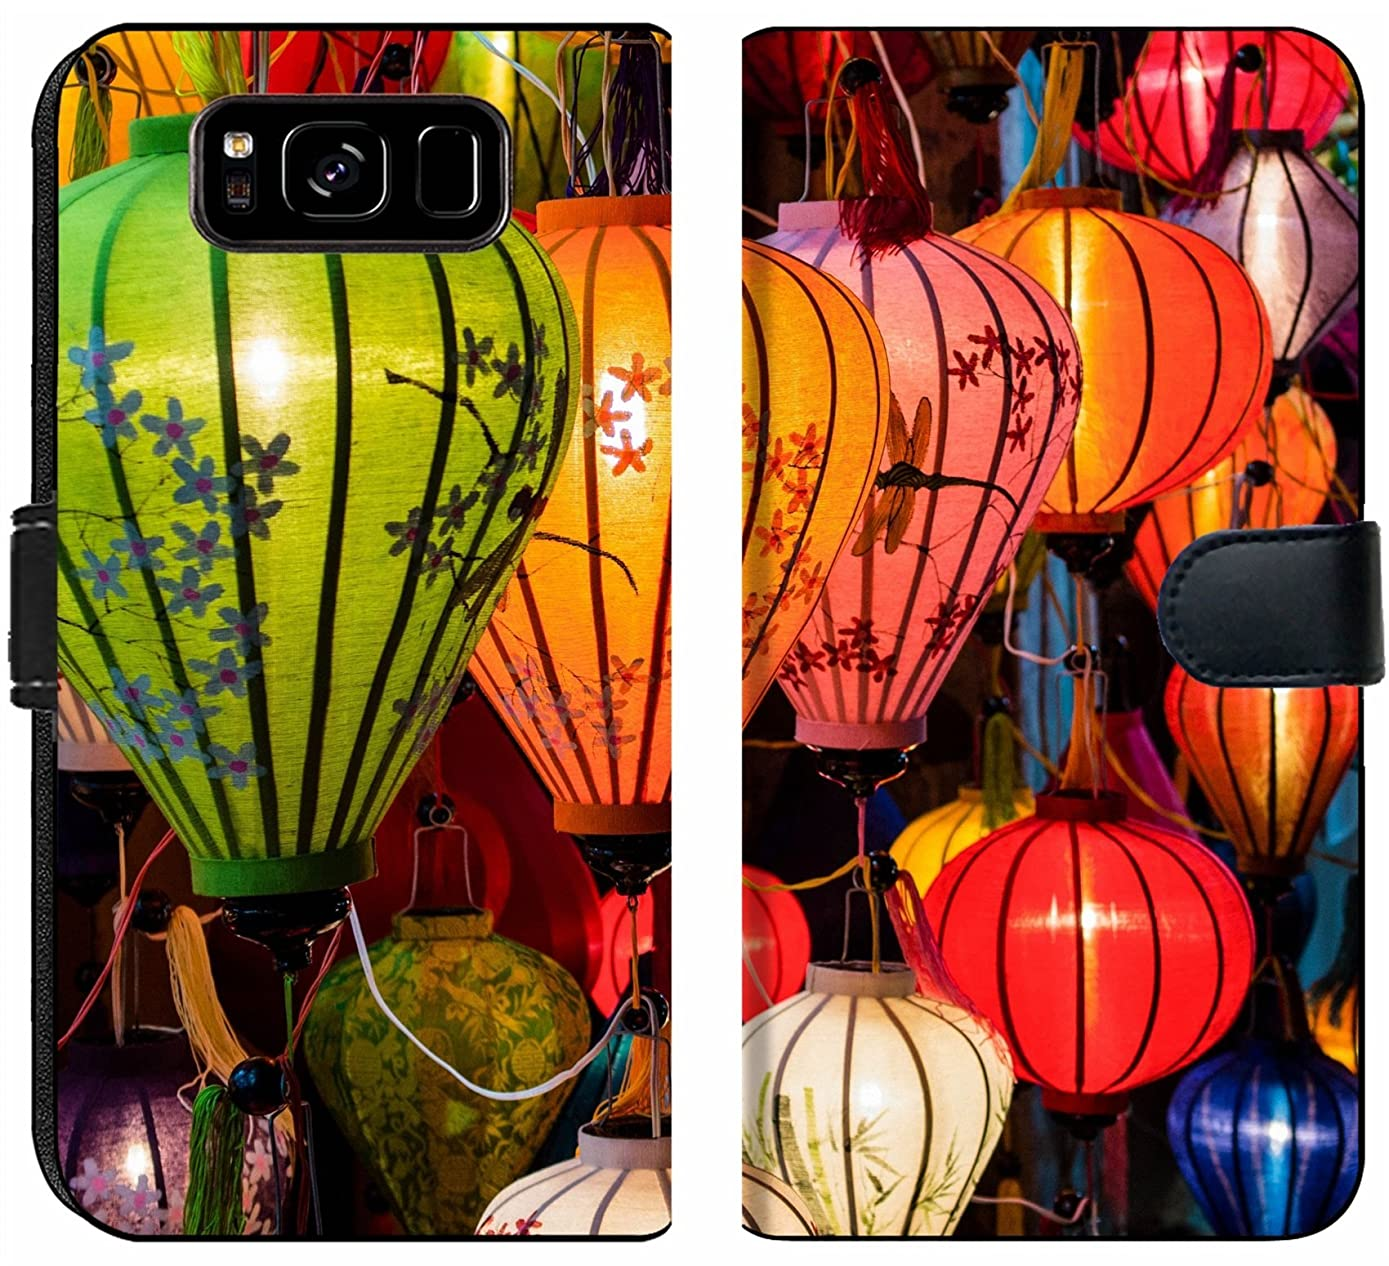 Samsung Galaxy S8 Flip Fabric Wallet Case Image ID: 31089698 Traditional Lamps in Old Town Hoi an Central Vietnam